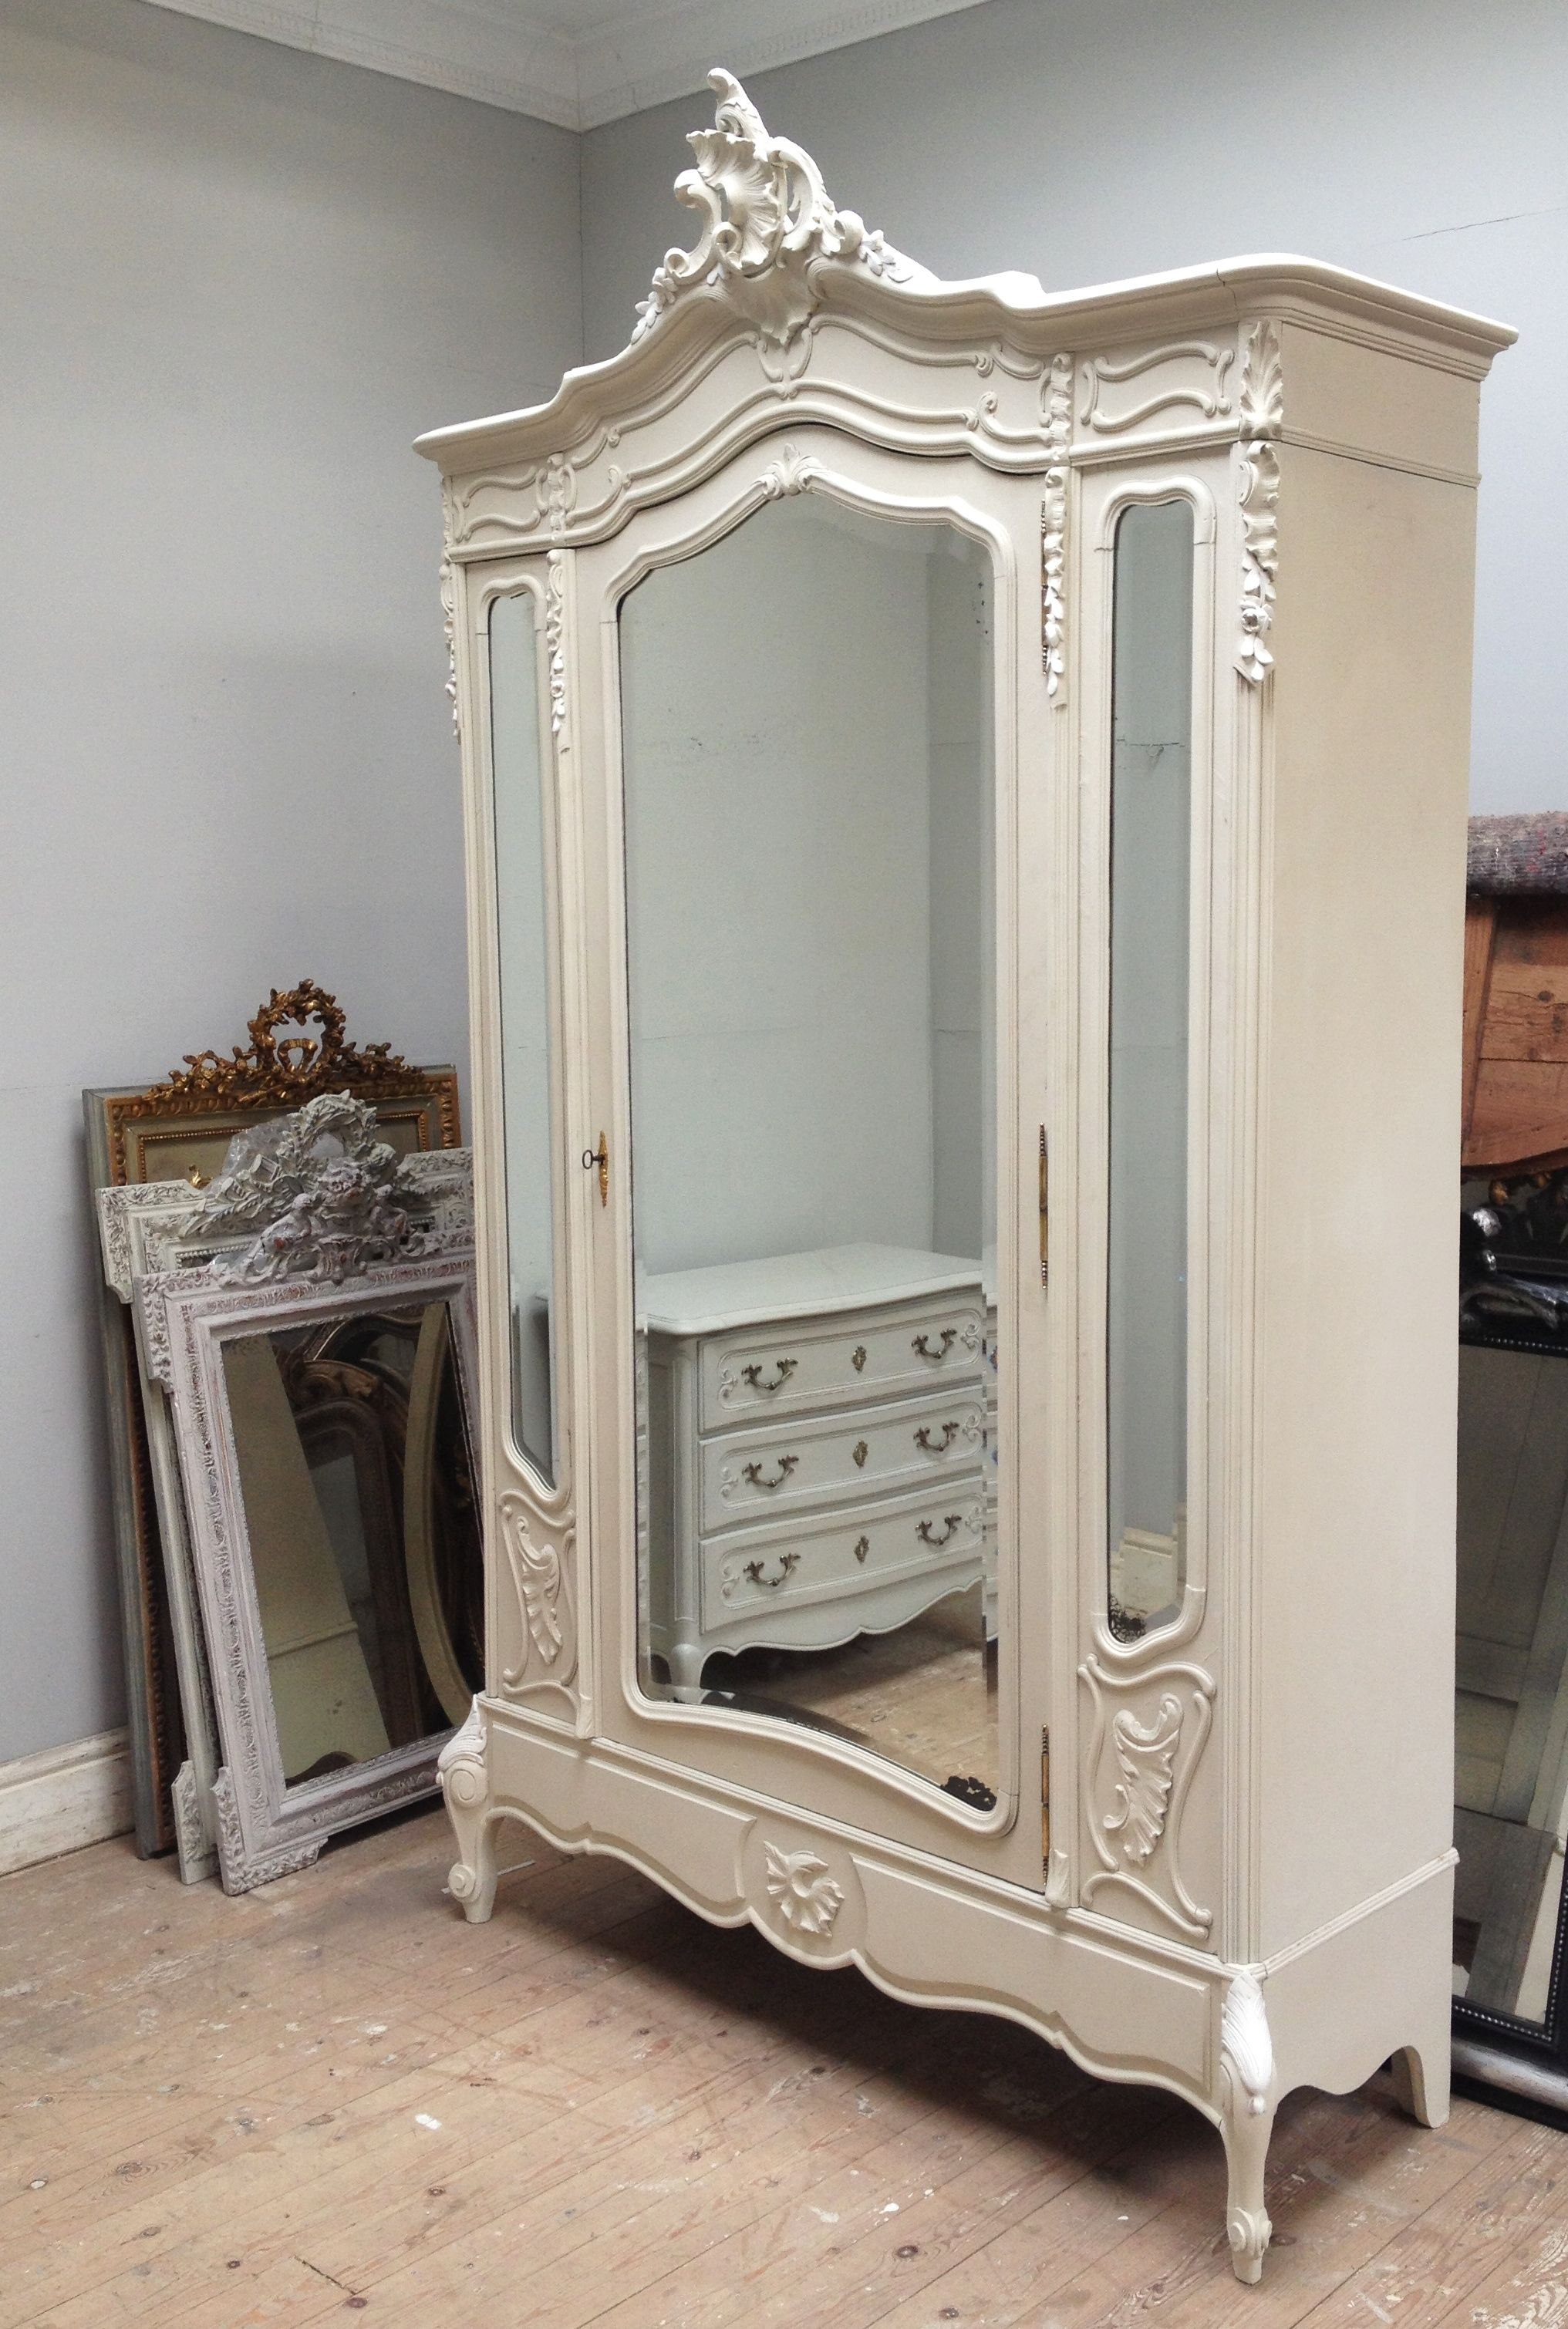 1800-1899 Armoires & Wardrobes Louis Xvi Style Painted Triple Door C1890 Keep You Fit All The Time French Antique Armoire